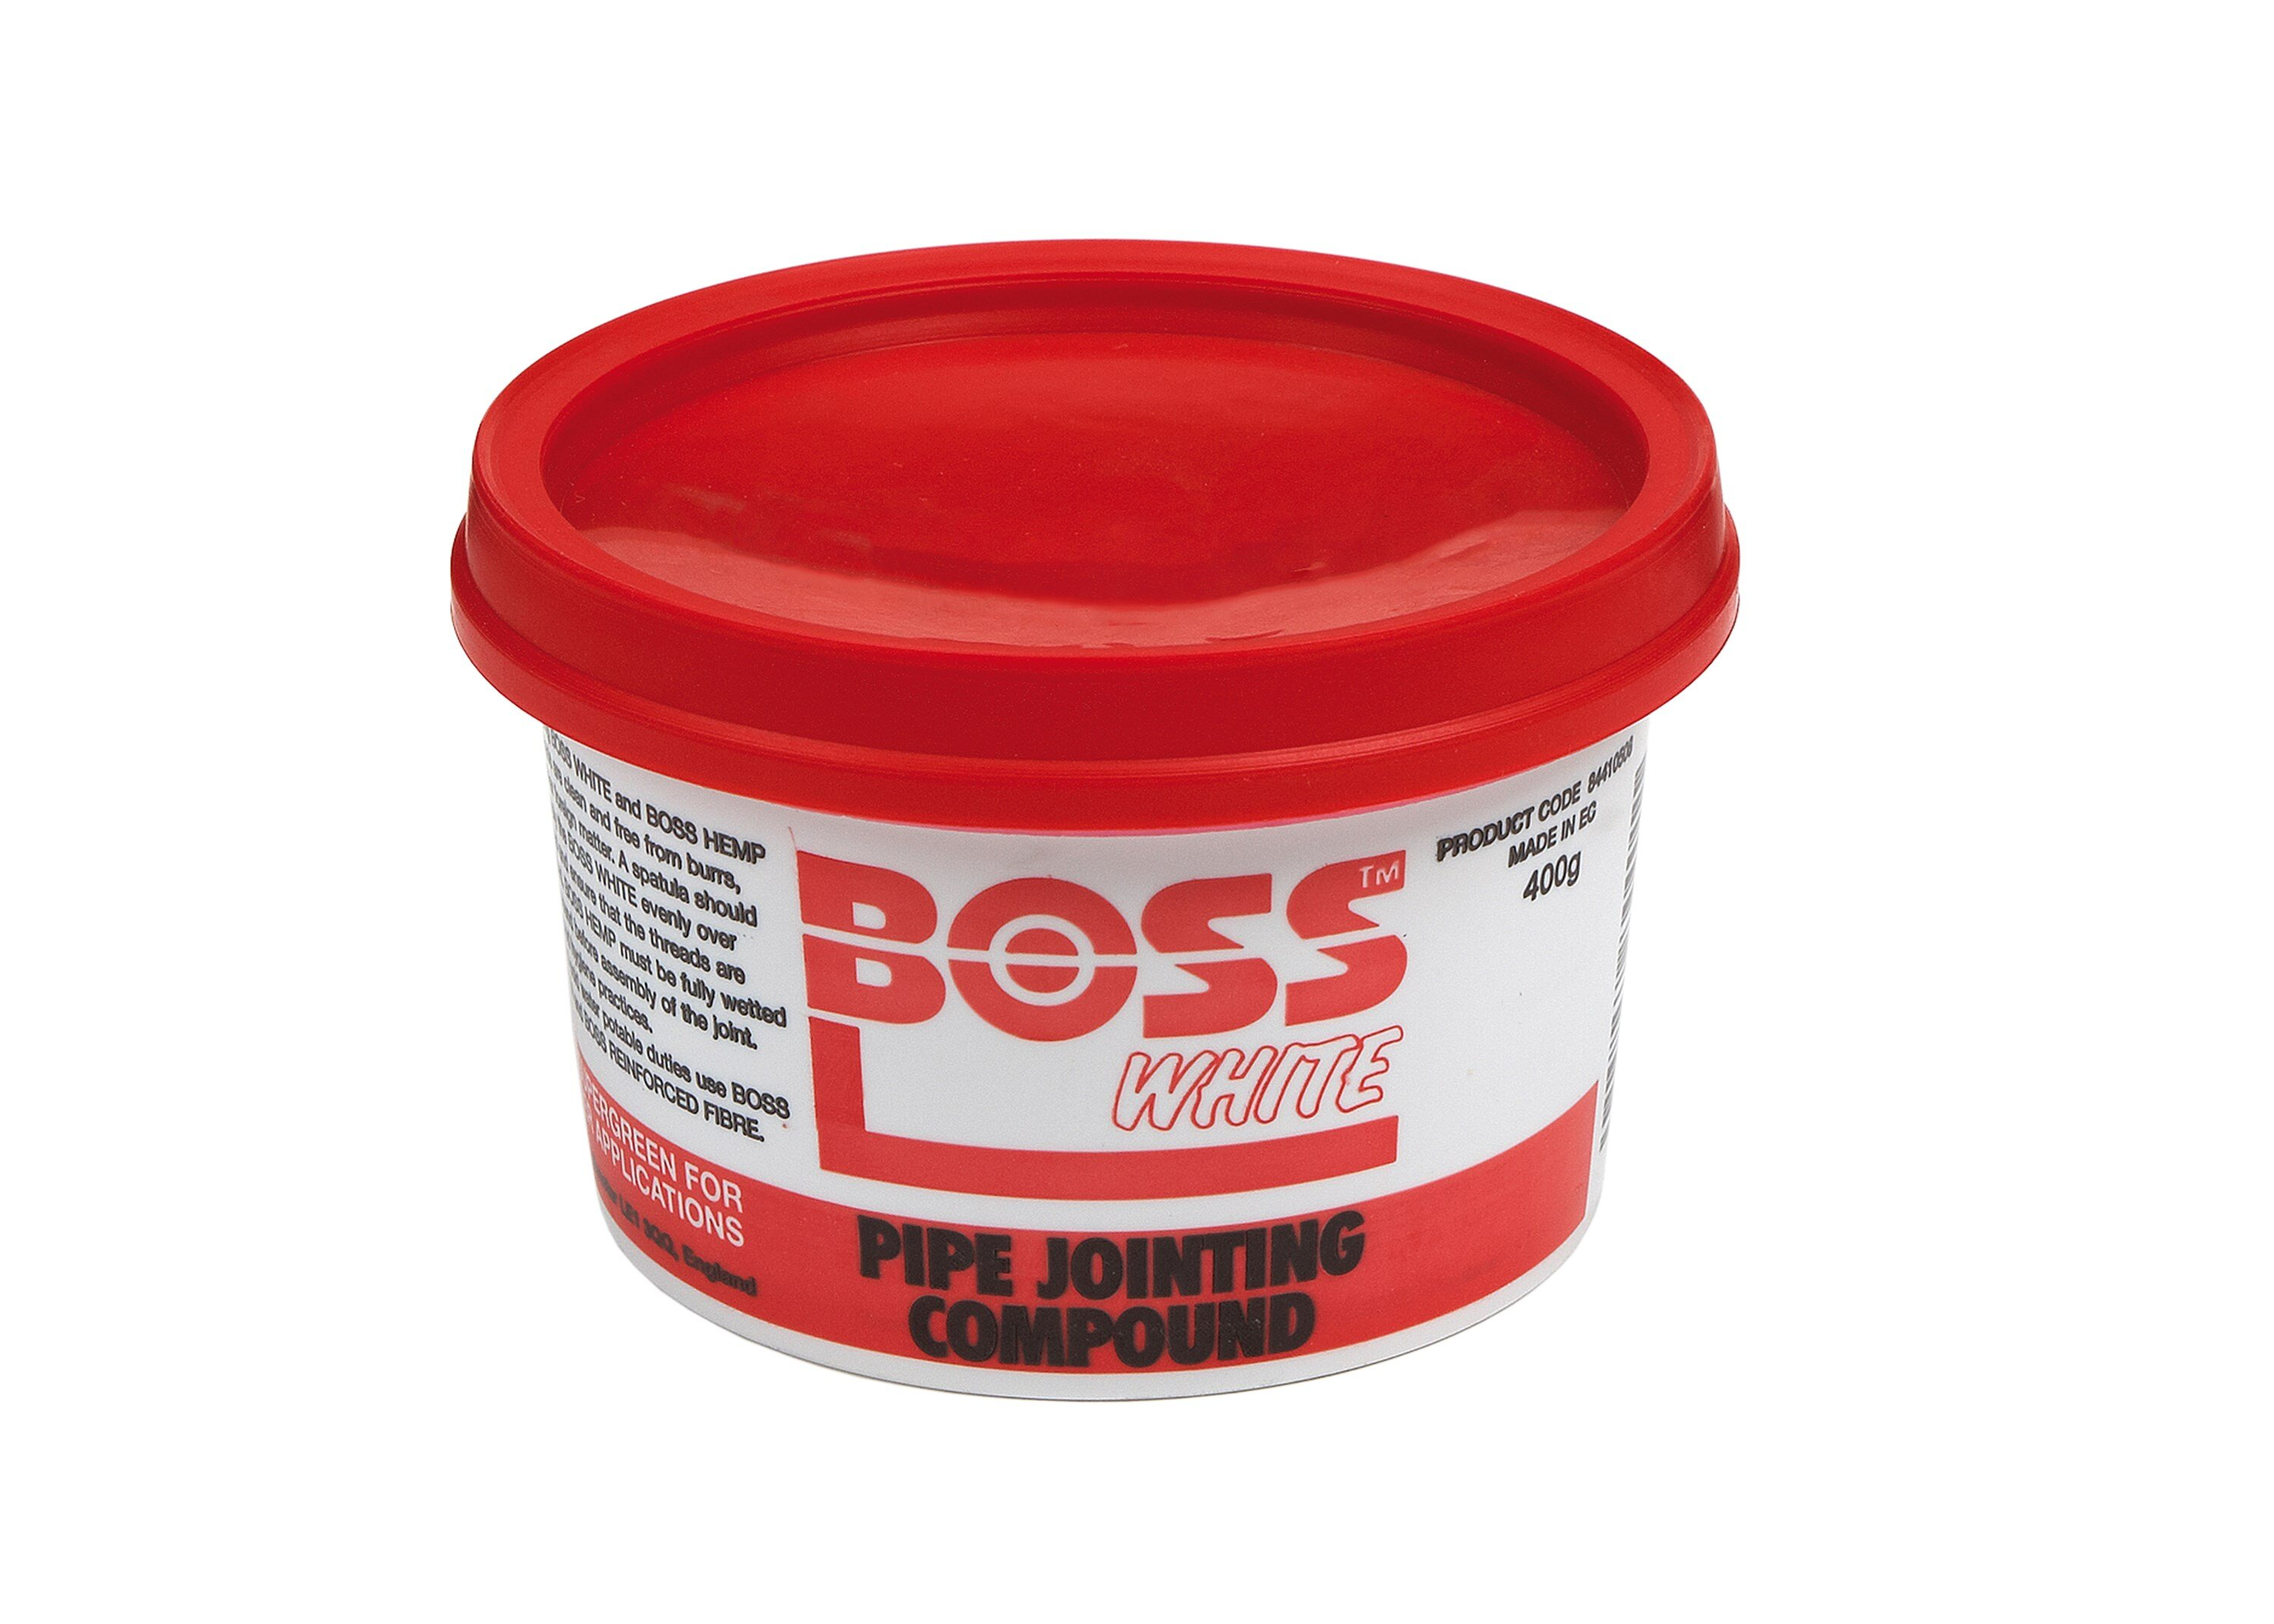 BOSS WHITE PIPE JOINTING COMPOUND 400 GRM